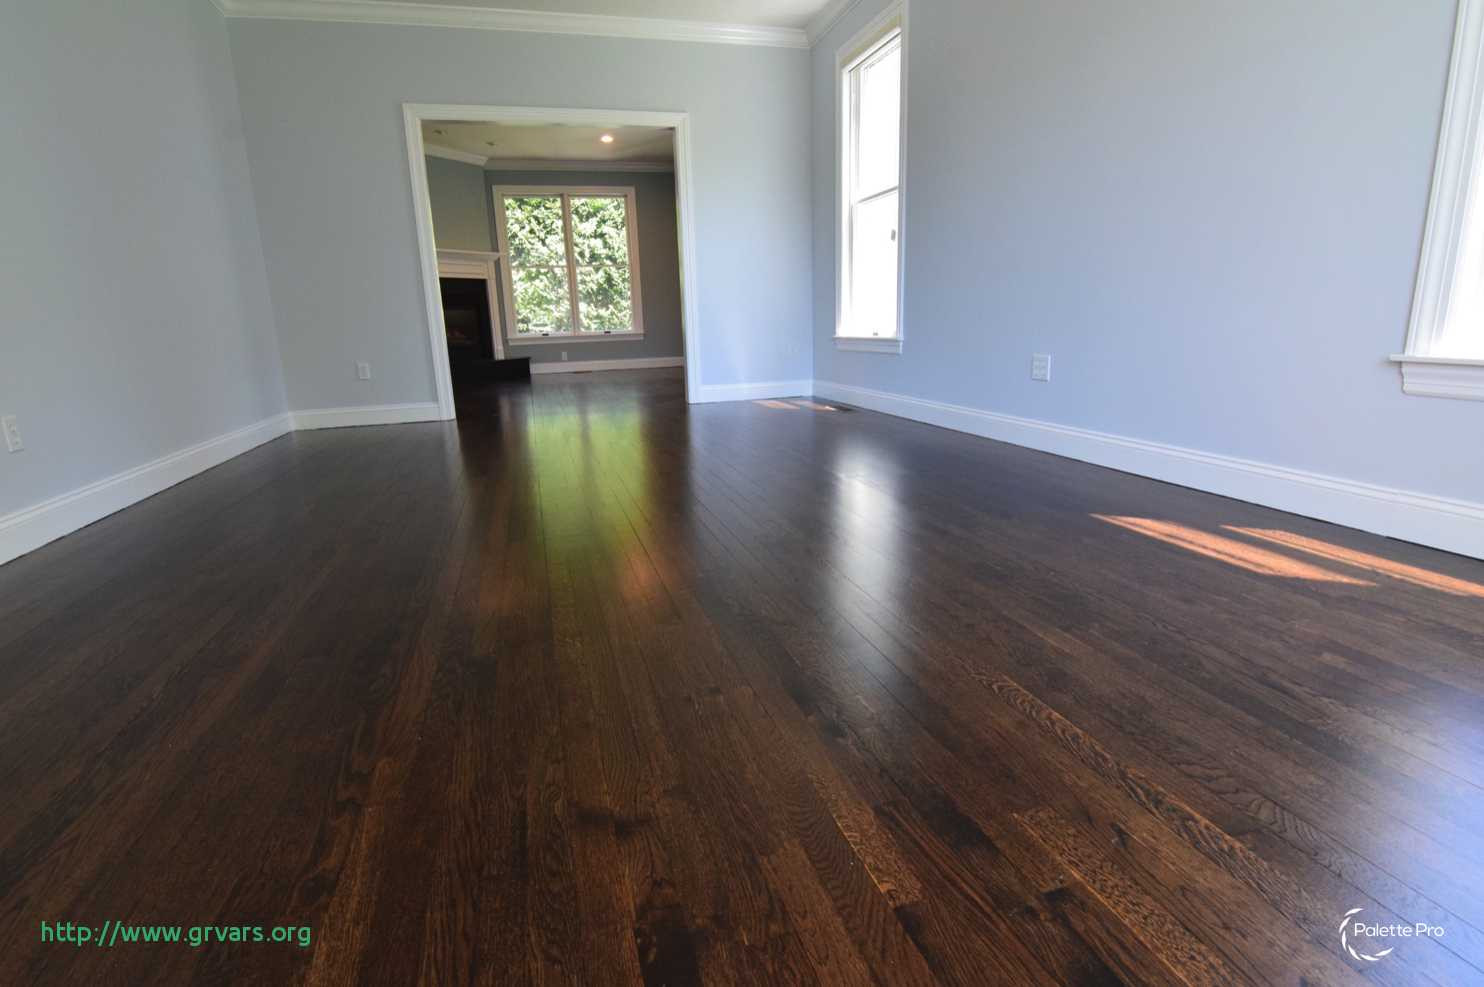 Hardwood Floor Refinishing Nj Costs Of How Much Does It Cost to Have Floors Refinished Beau Hardwood Floor Regarding How Much Does It Cost to Have Floors Refinished Beau Hardwood Floor Refinishing